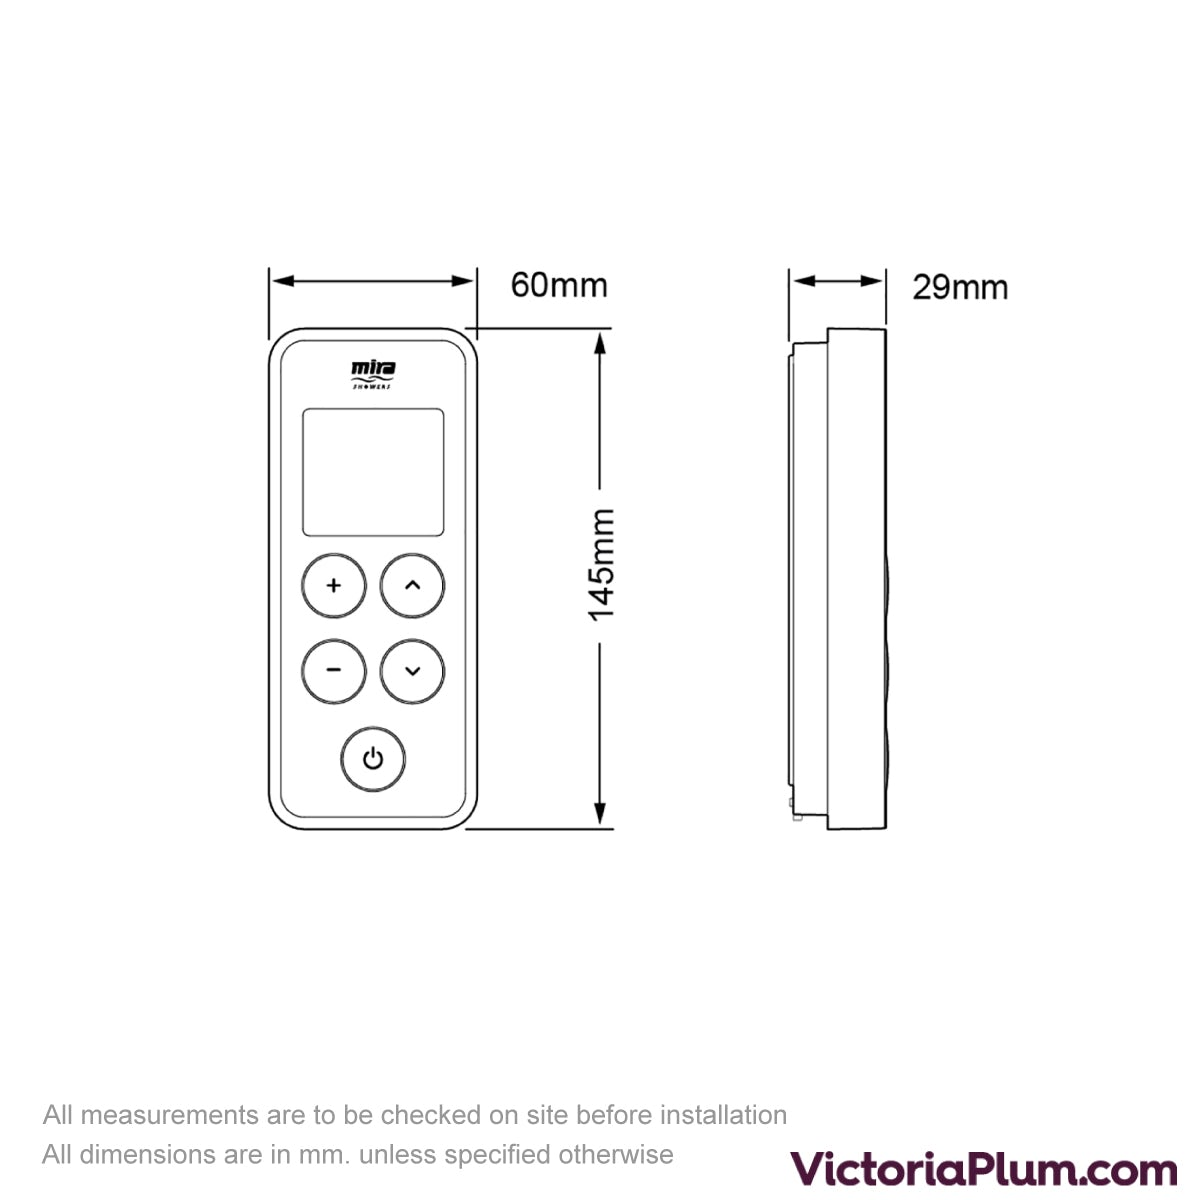 Dimensions for Mira Vision single wireless digital shower controller